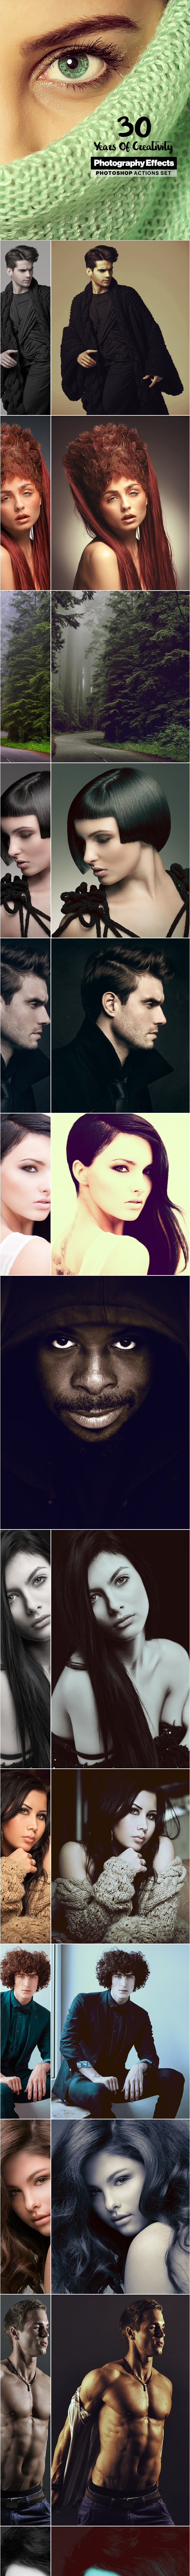 30 Premium Photoshop Actions - Years Of Creativity - Photo Effects Actions